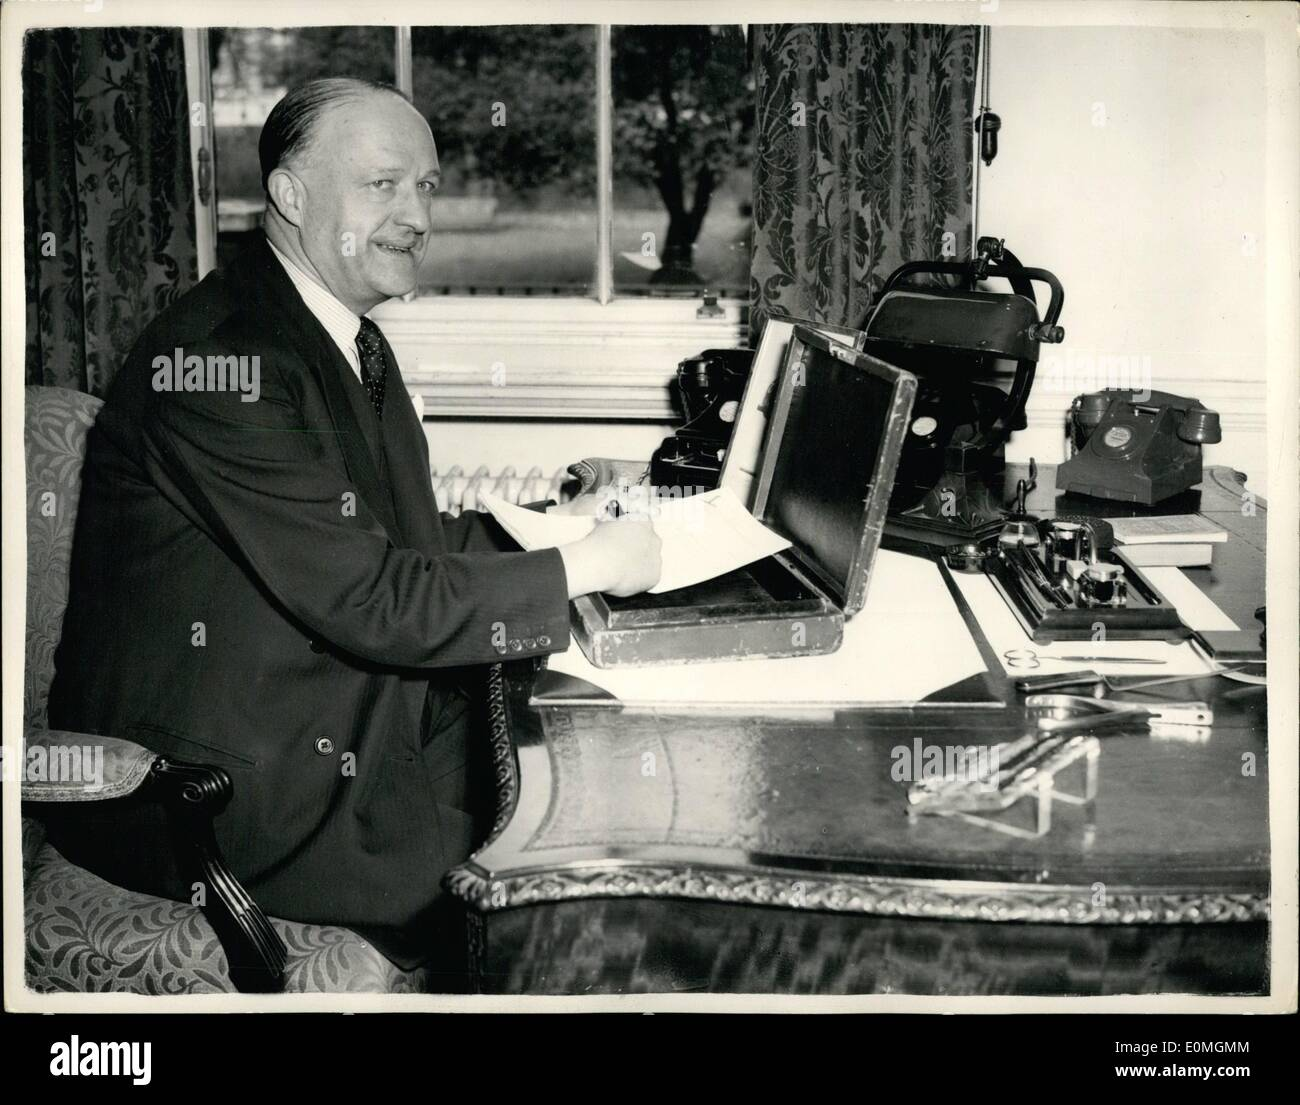 Apr. 04, 1955 - Not for publication until Tuesday - April 19th. 1955. chancellor of the exchequer prepares his budget Mr. R.A. butler at fl downing street. Bippa photo shows Mr. R.A. Butler the chancellor of the Exchequer - seen at his desk at his official residence - no. 11. downing street - with the famous budget box - as he prepares his budget. - Stock Image